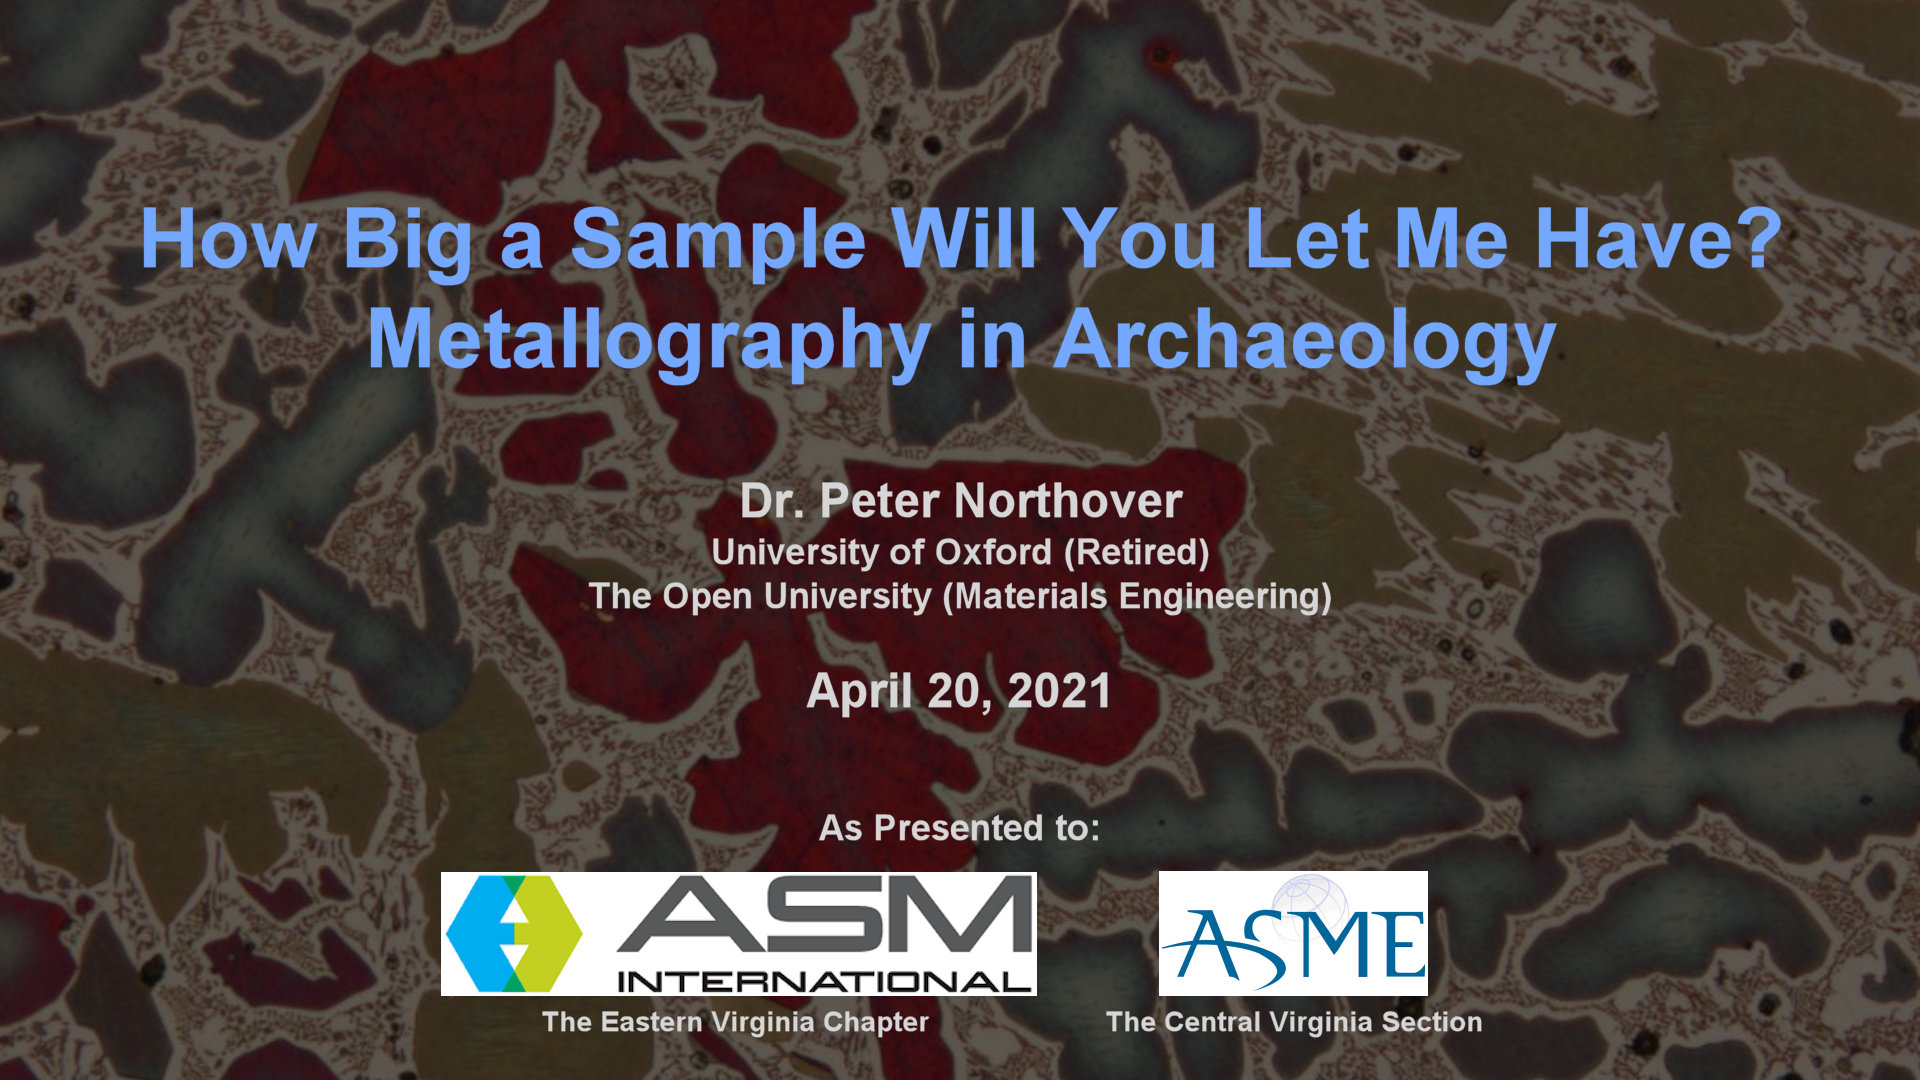 How Big a Sample Will You Let Me Have? - Metallography in Archaeology